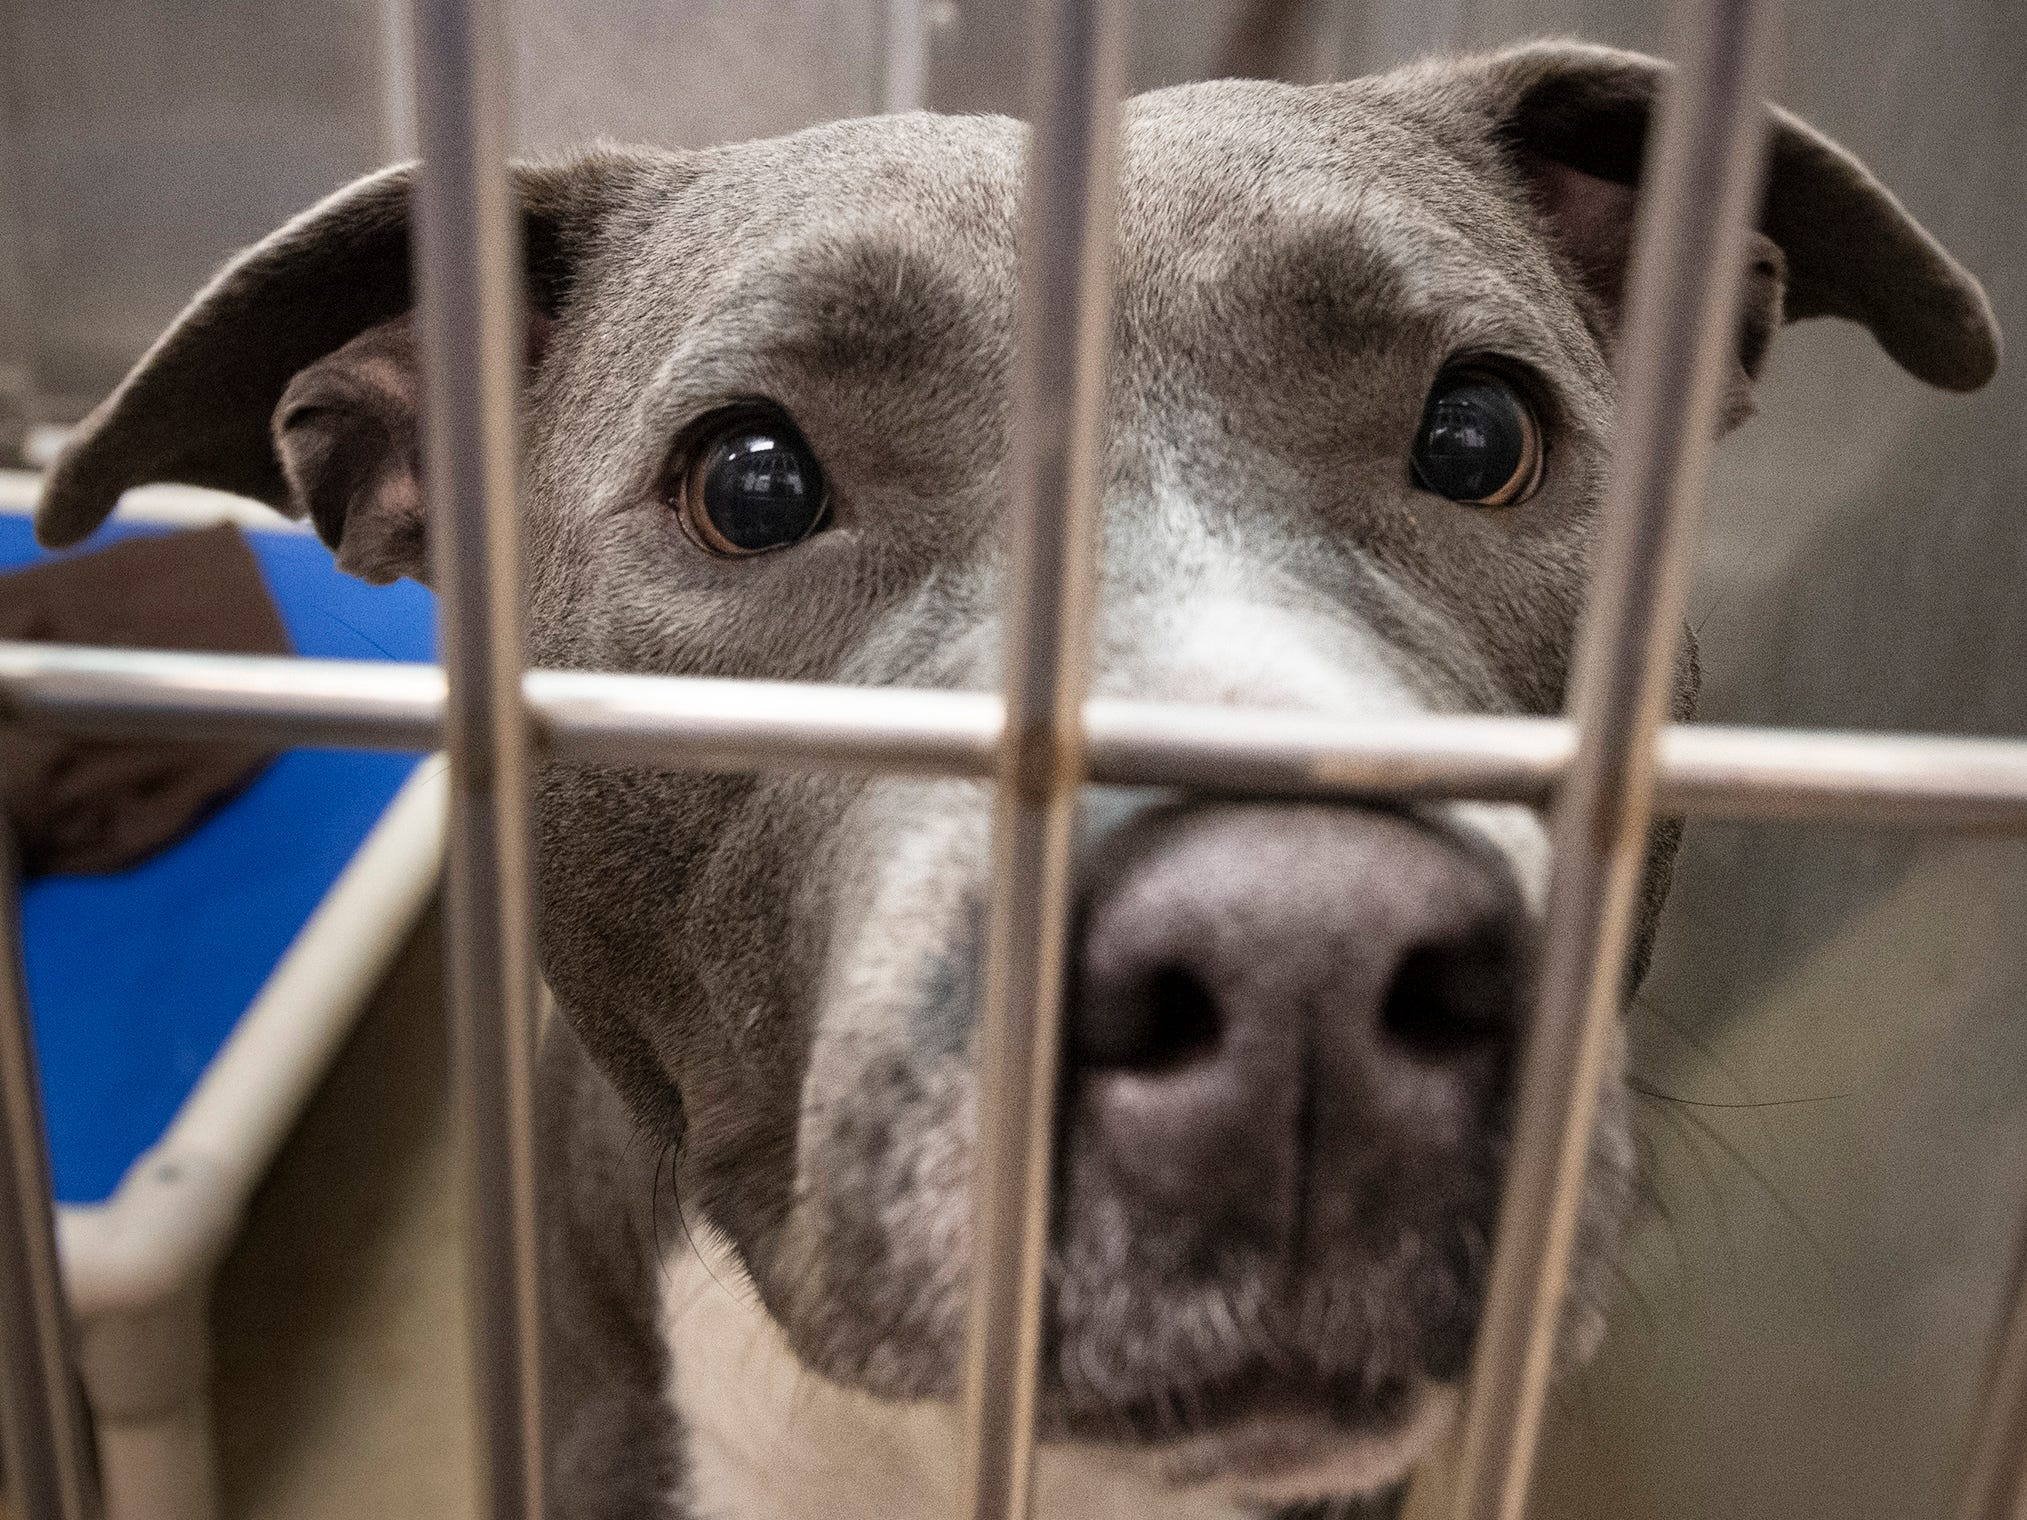 Willow is a female blue Pit Bull who was found on Main Street in Windsor Township. She is not good with cats. She is available for adoption at The York County SPCA Tuesday February 26, 2019.